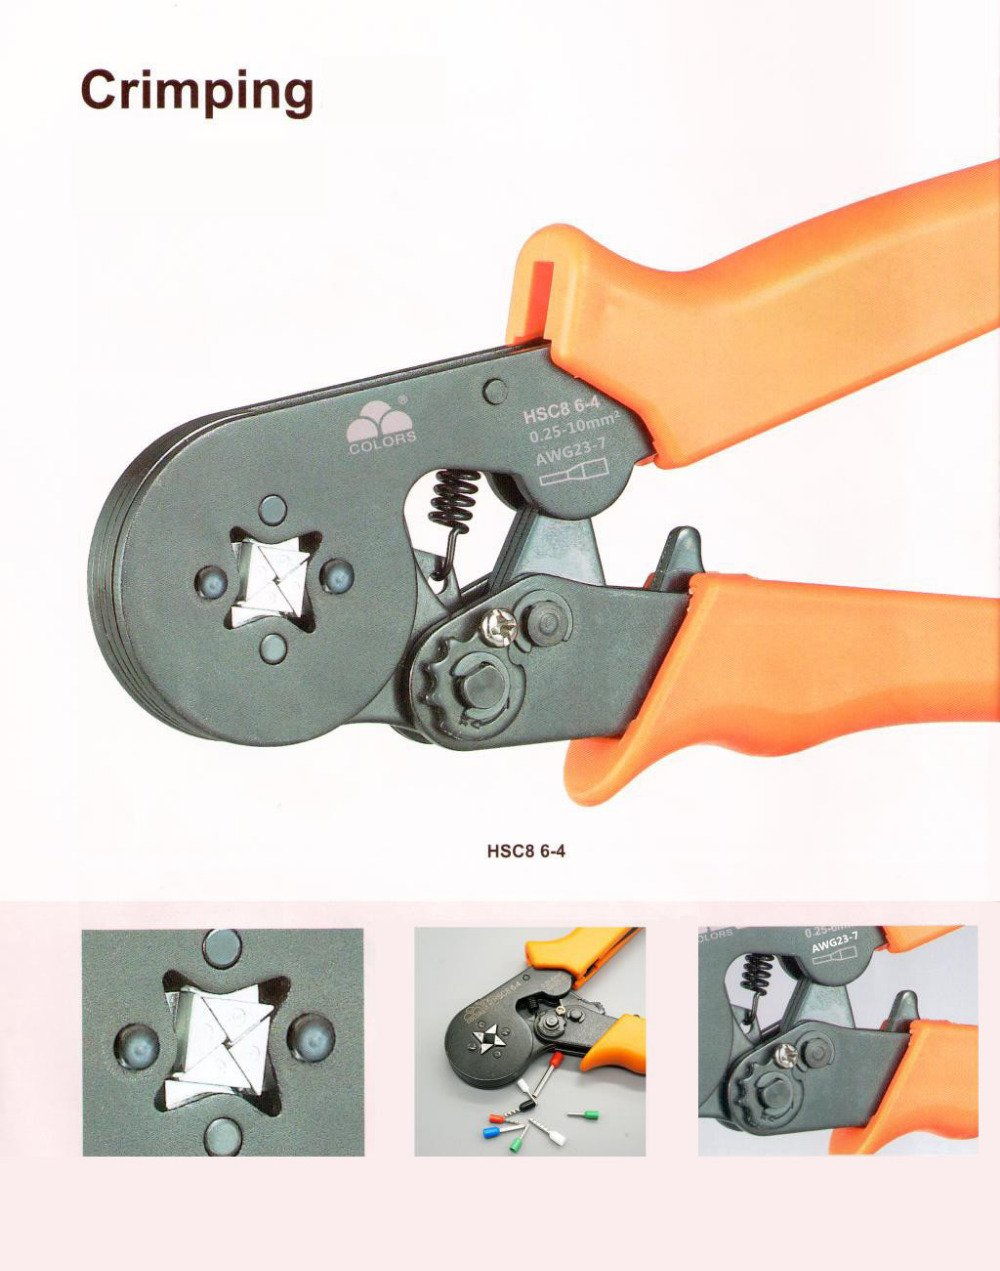 Crimper Plier HSC8 6-4 Self-adjustable Crimping Tools Used for 0.25-10mm2 (AWG23-7)Cable End-sleeves